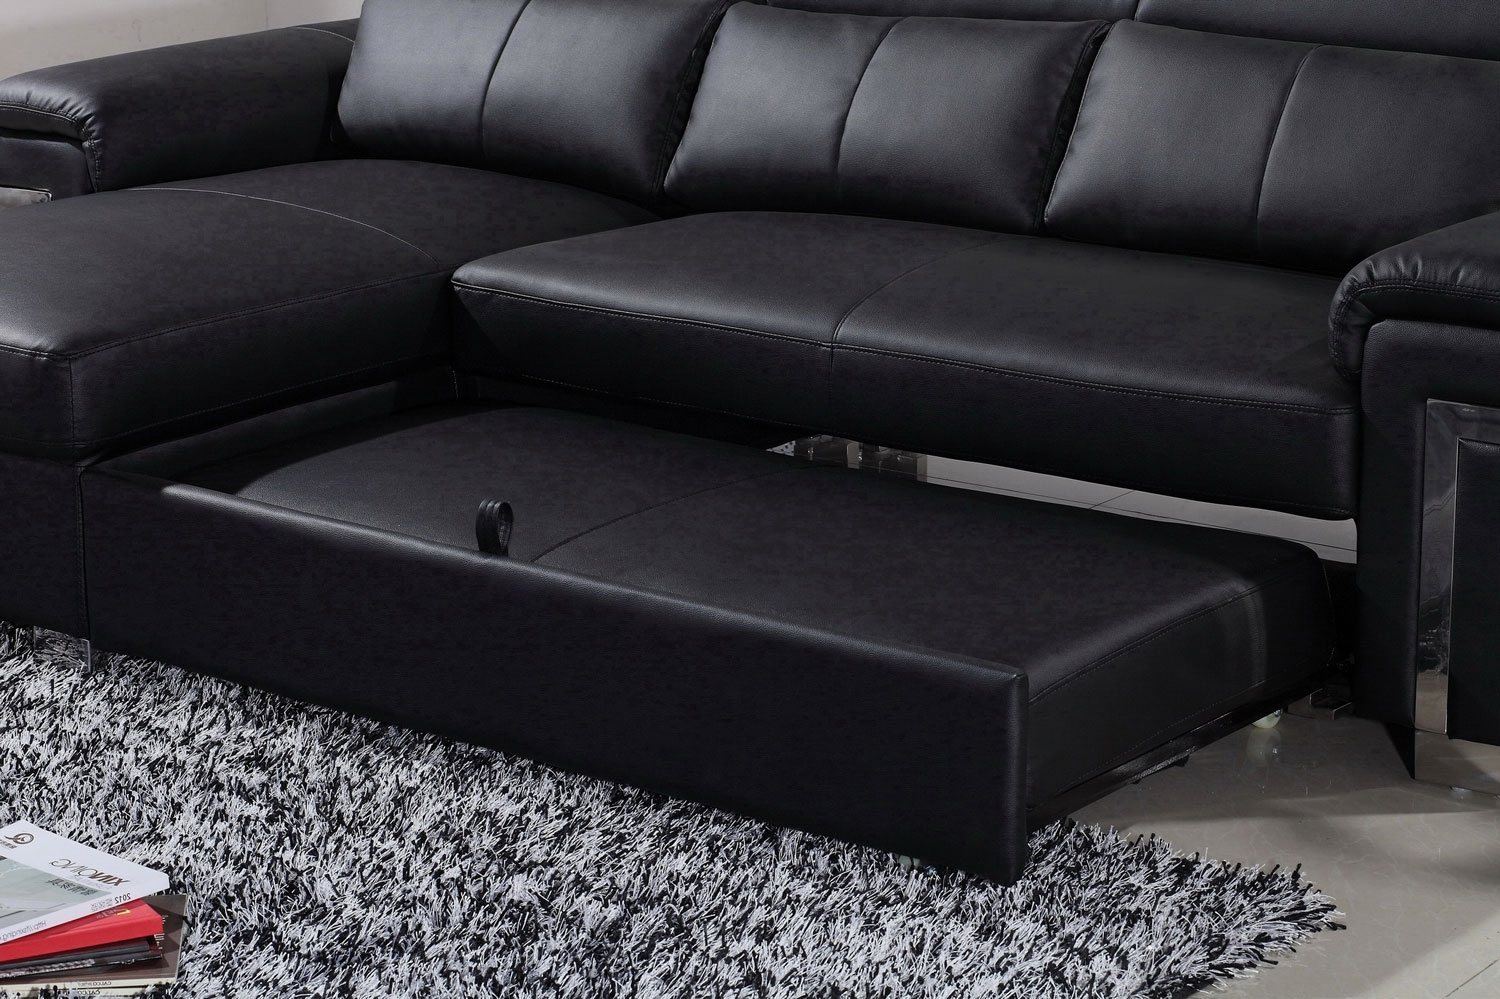 3 Seater Leather Sofa Bed Sofa Menzilperde Pertaining To 3 Seater Leather Sofas (Image 2 of 15)